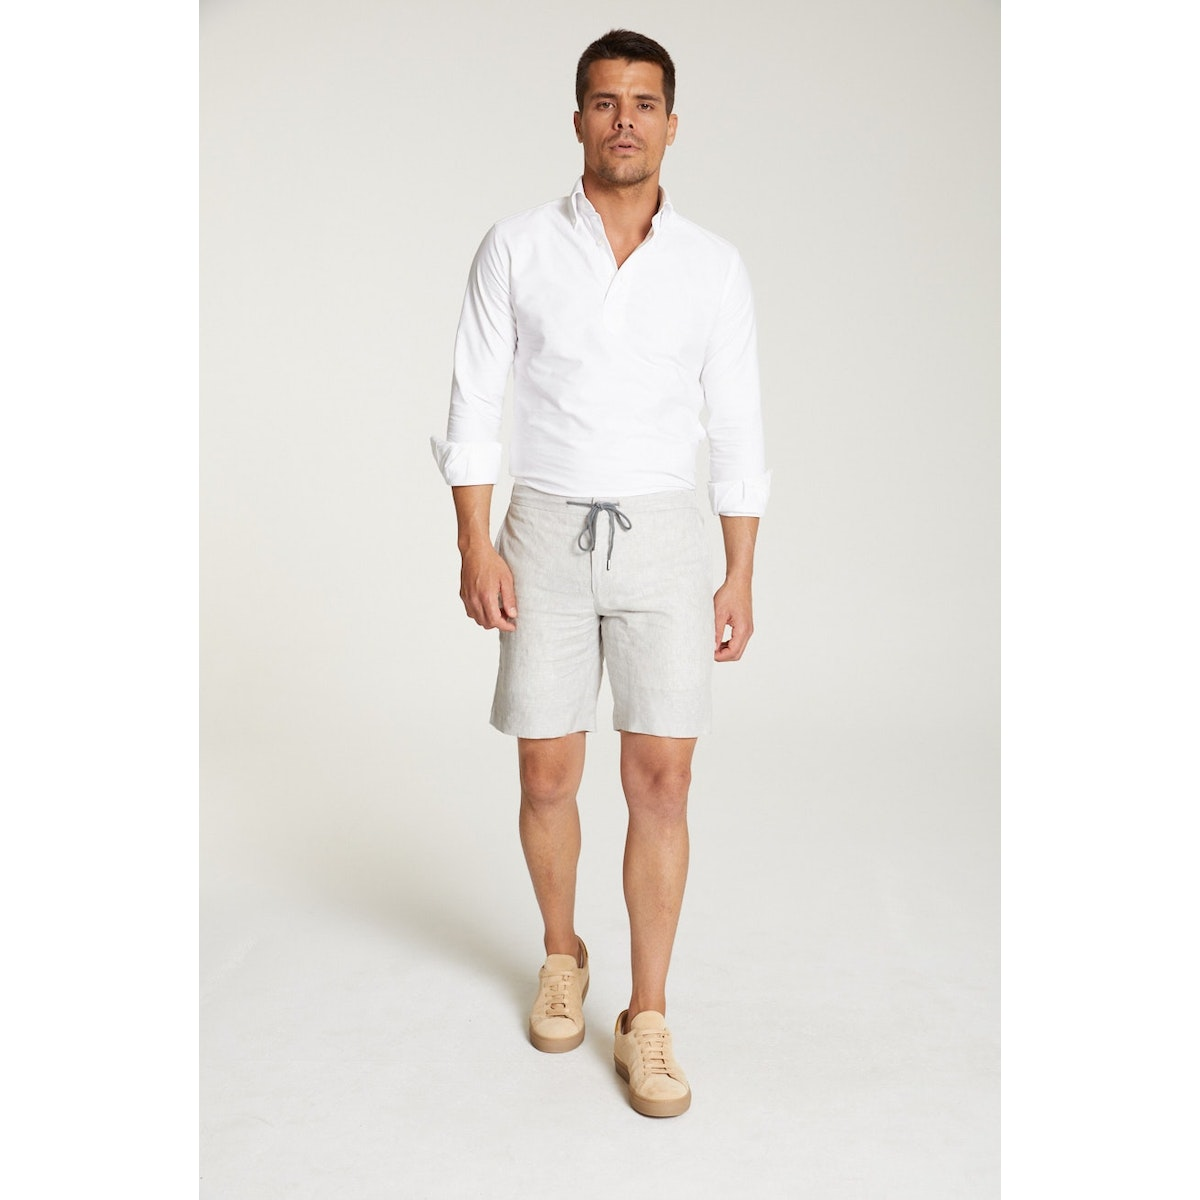 InStitchu Collection The Maiori Pale Grey Linen Shorts